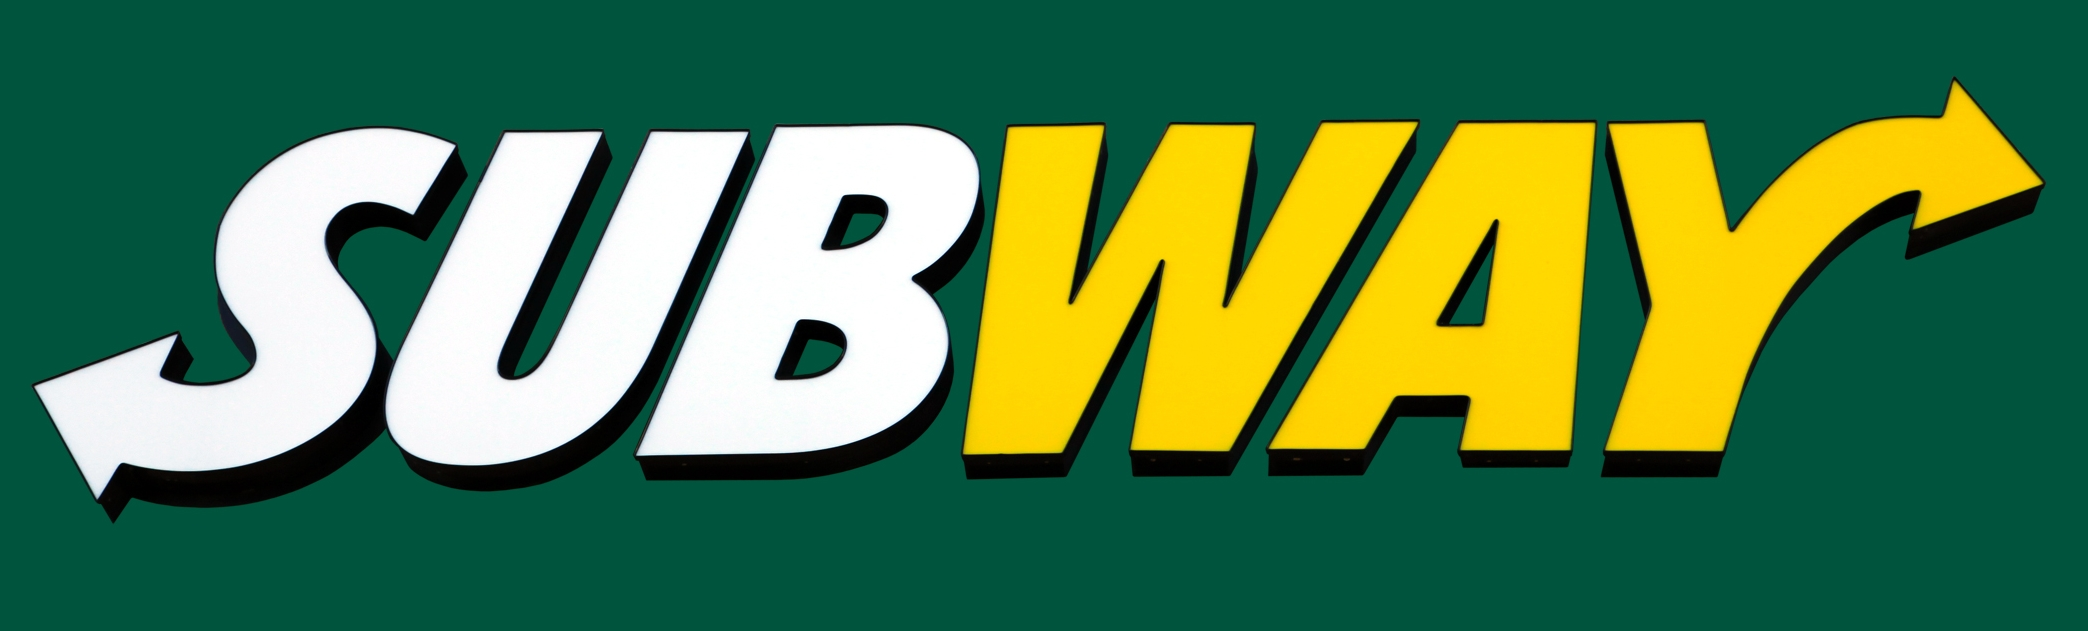 Subway Logo Eps PNG - 39038